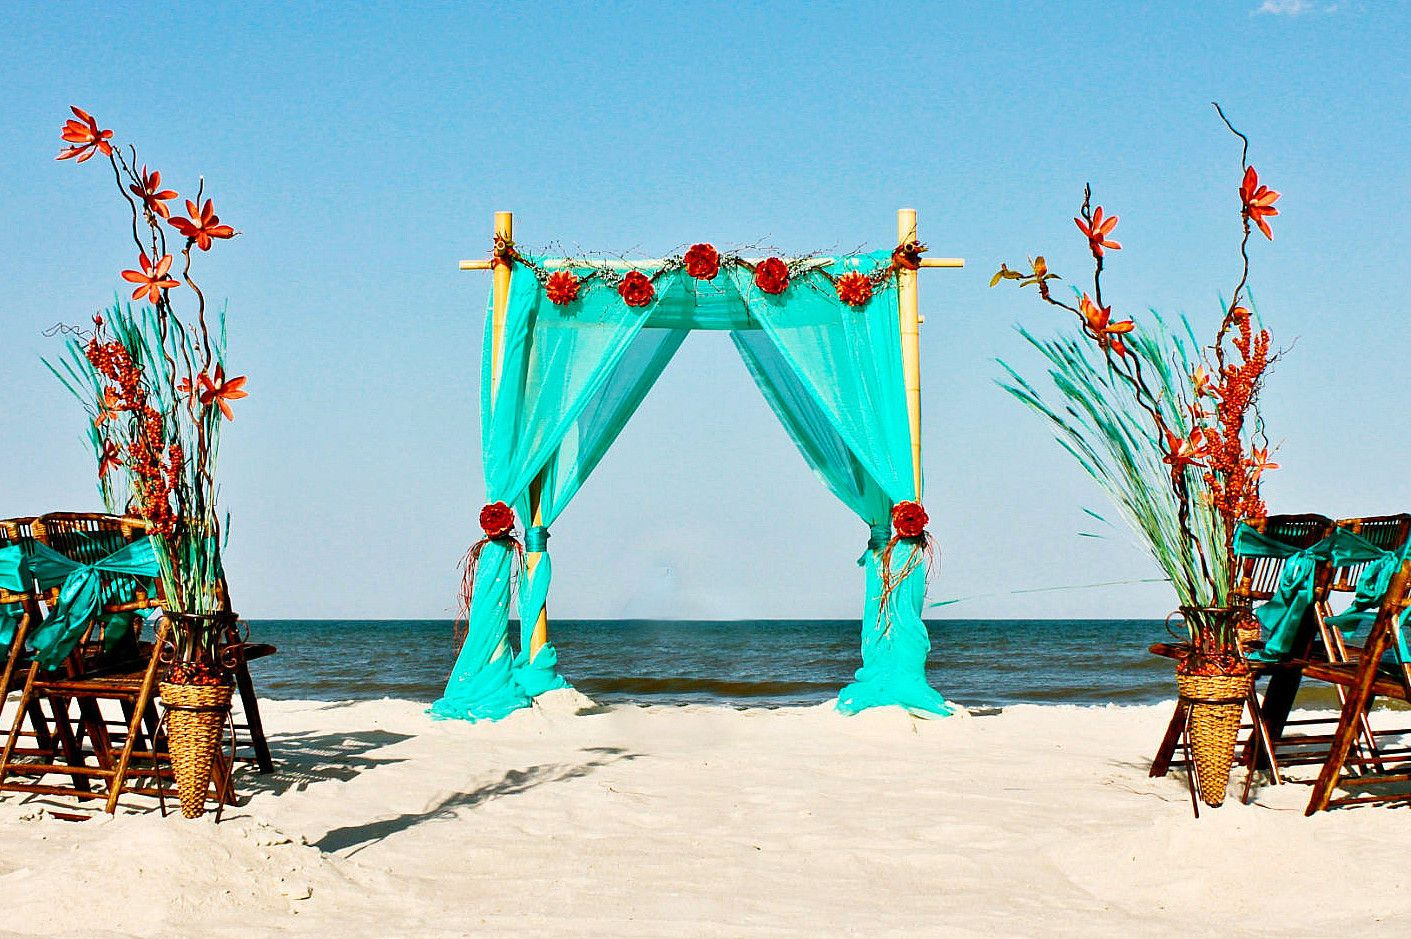 Turquoise/aqua and red/orange are one of my favorite color combinations for a beach wedding. I love how those colors are incorporated I to the chair and aisle decor as well.